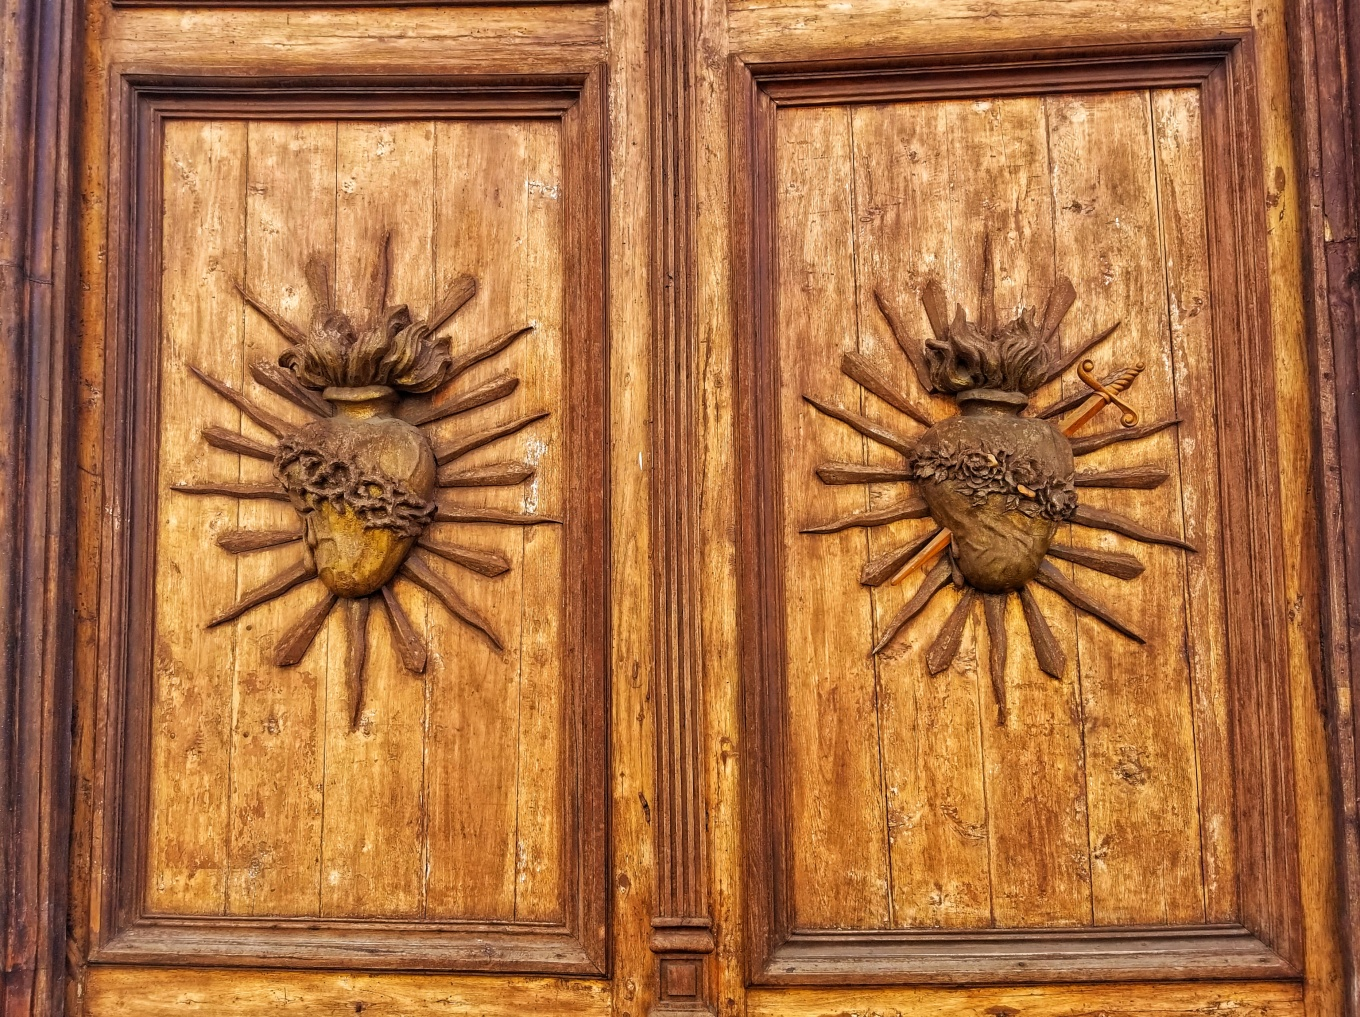 Carved doors along Calle Larga